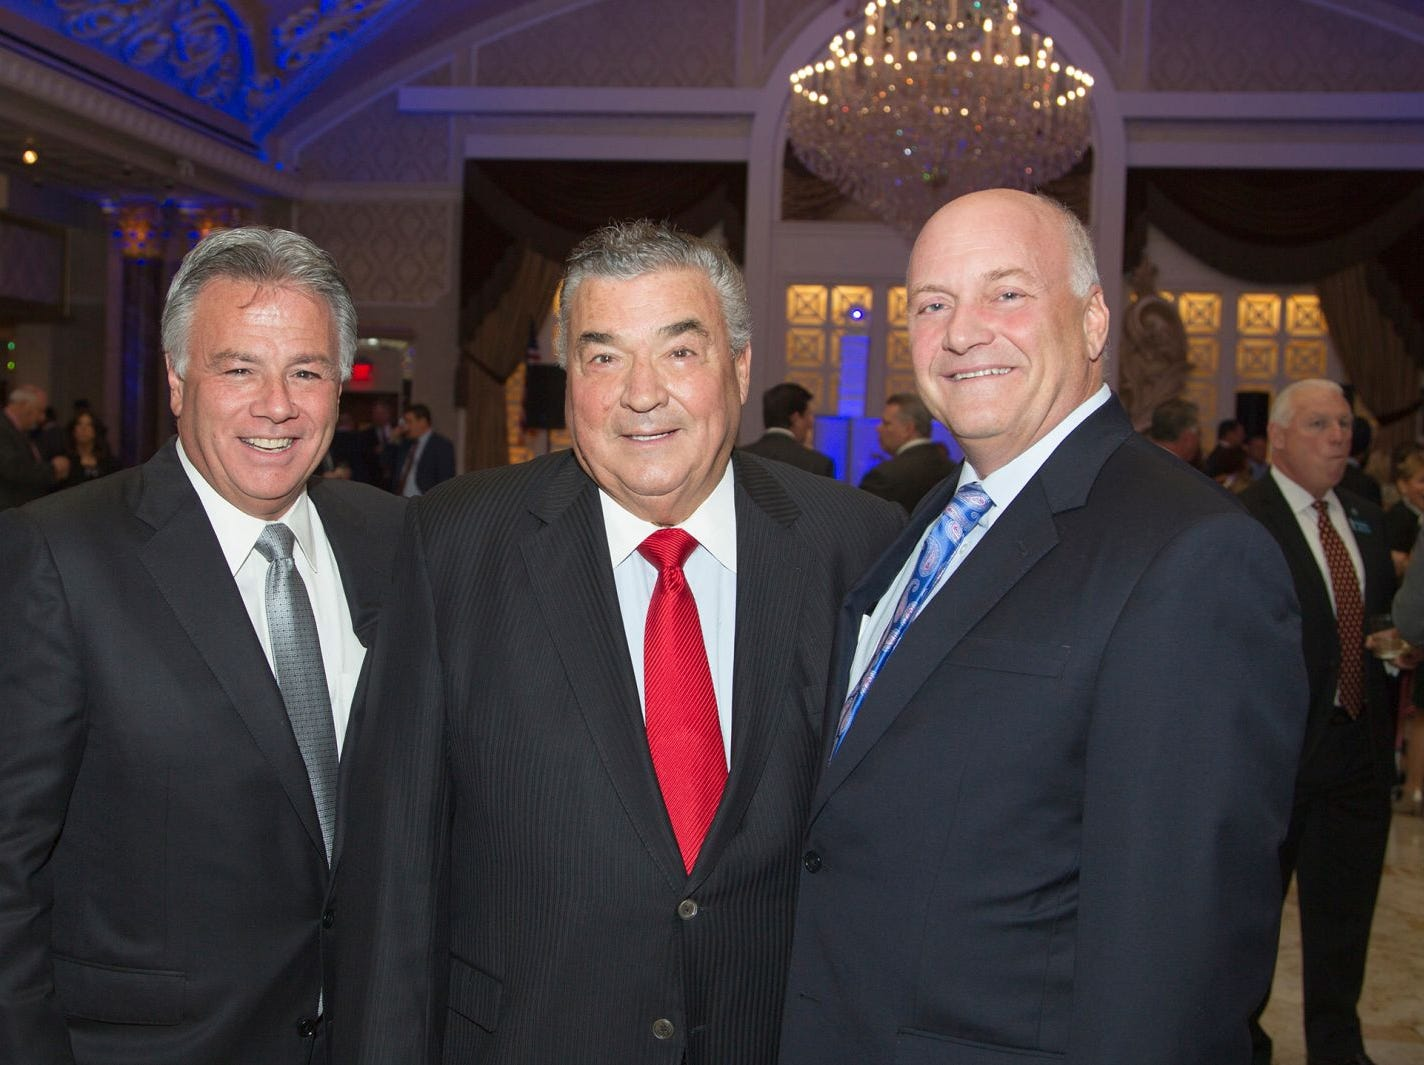 Larry Inserra Jr., Joseph M. Sanzari, Michael Maron. Holy Name Medical Center held its 2018 MS Center Awards Reception at the Venetian in Garfield. 10/23/2018